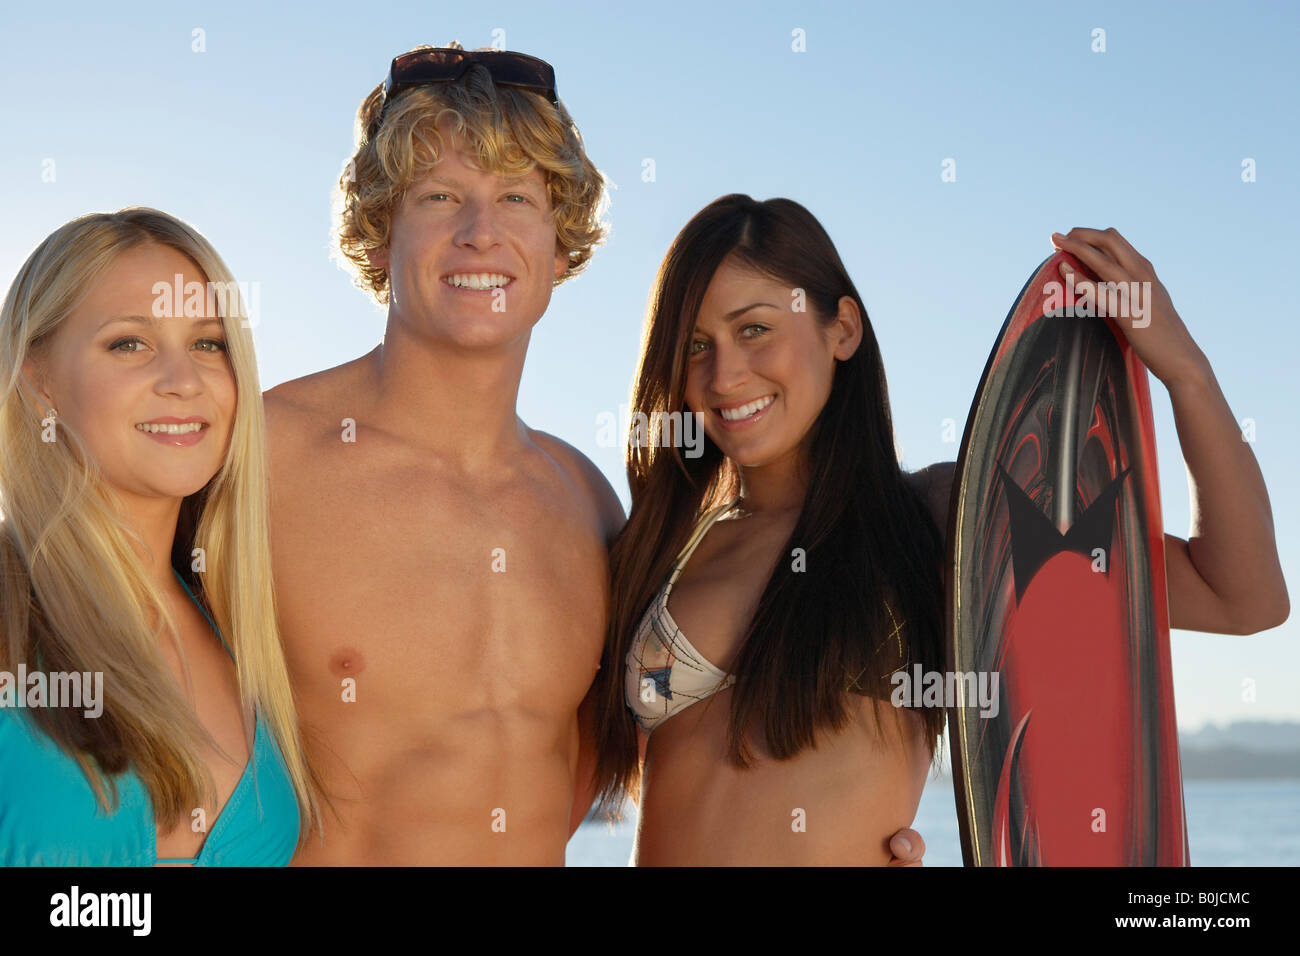 Young friends in swimwear outdoors, portrait - Stock Image